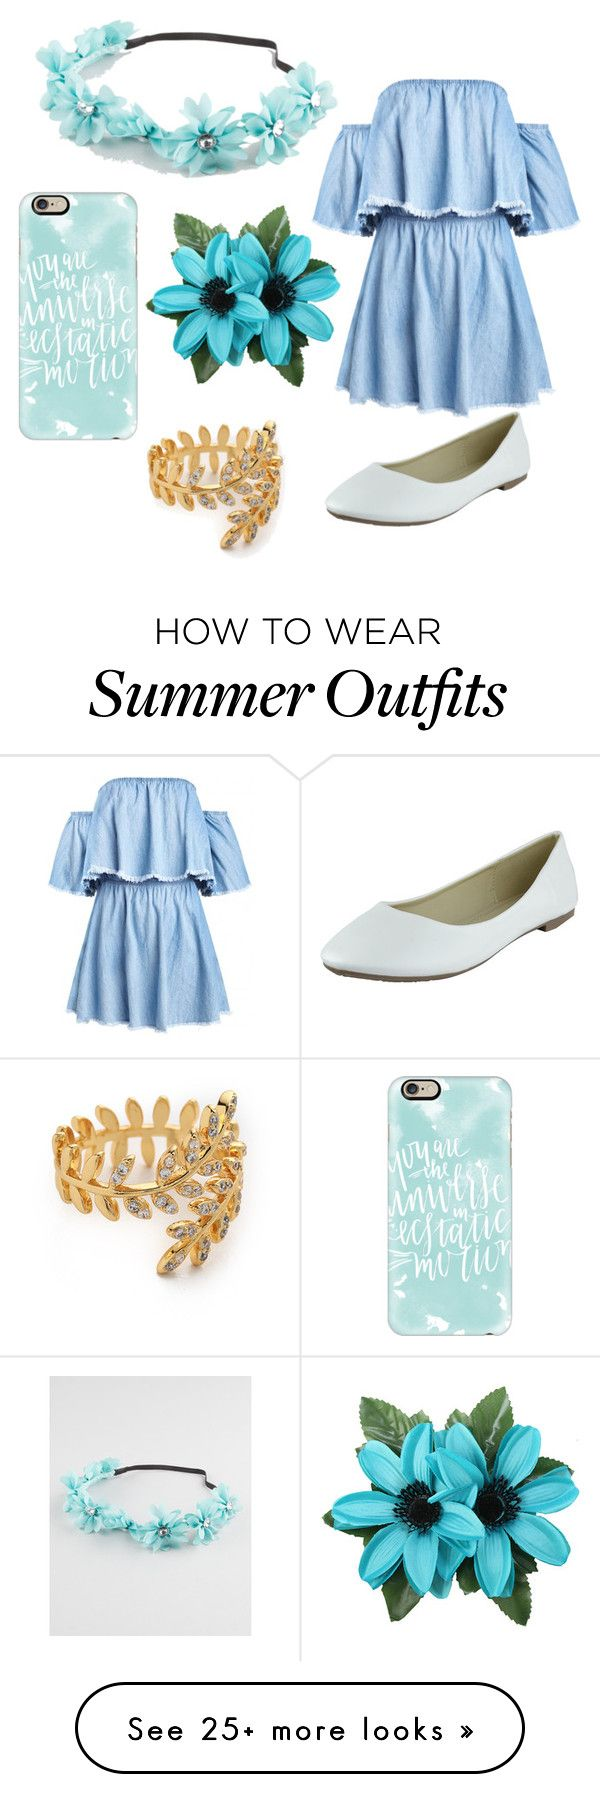 """""""Cute summer outfit"""" by liza-ionova on Polyvore featuring Casetify, Full Tilt and Gorjana"""